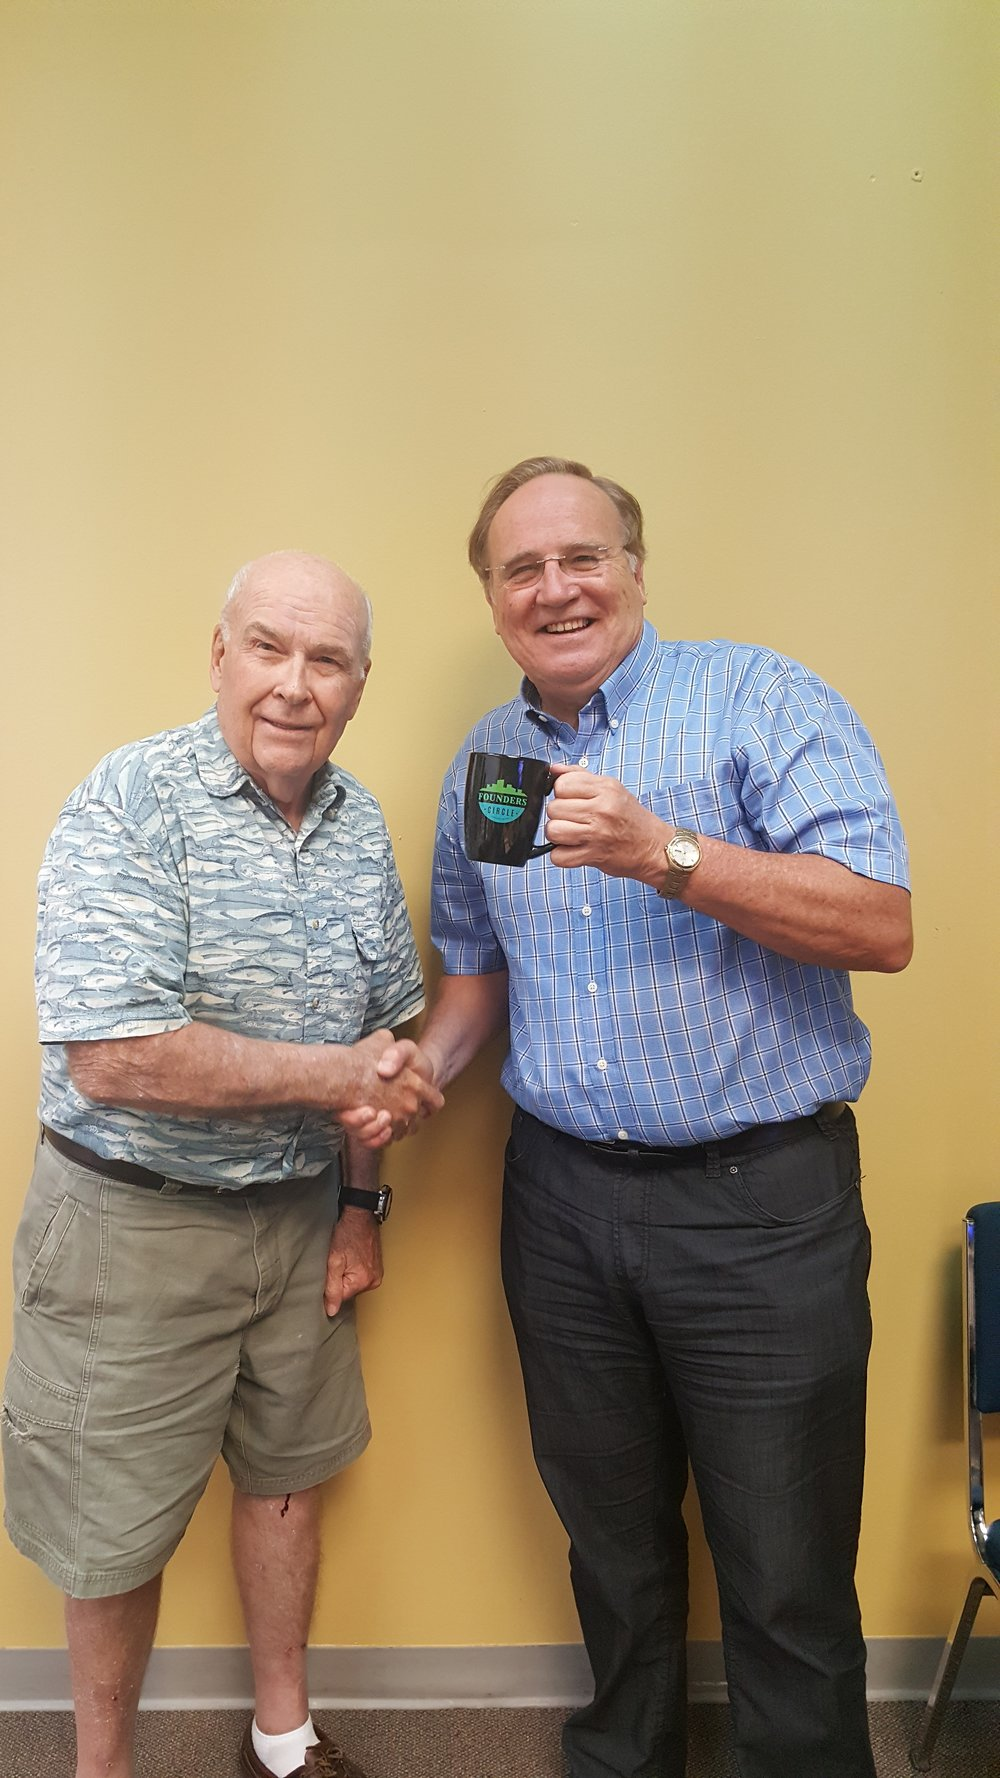 Stuart Morley presenting the Founders Circle mug to John Cooper